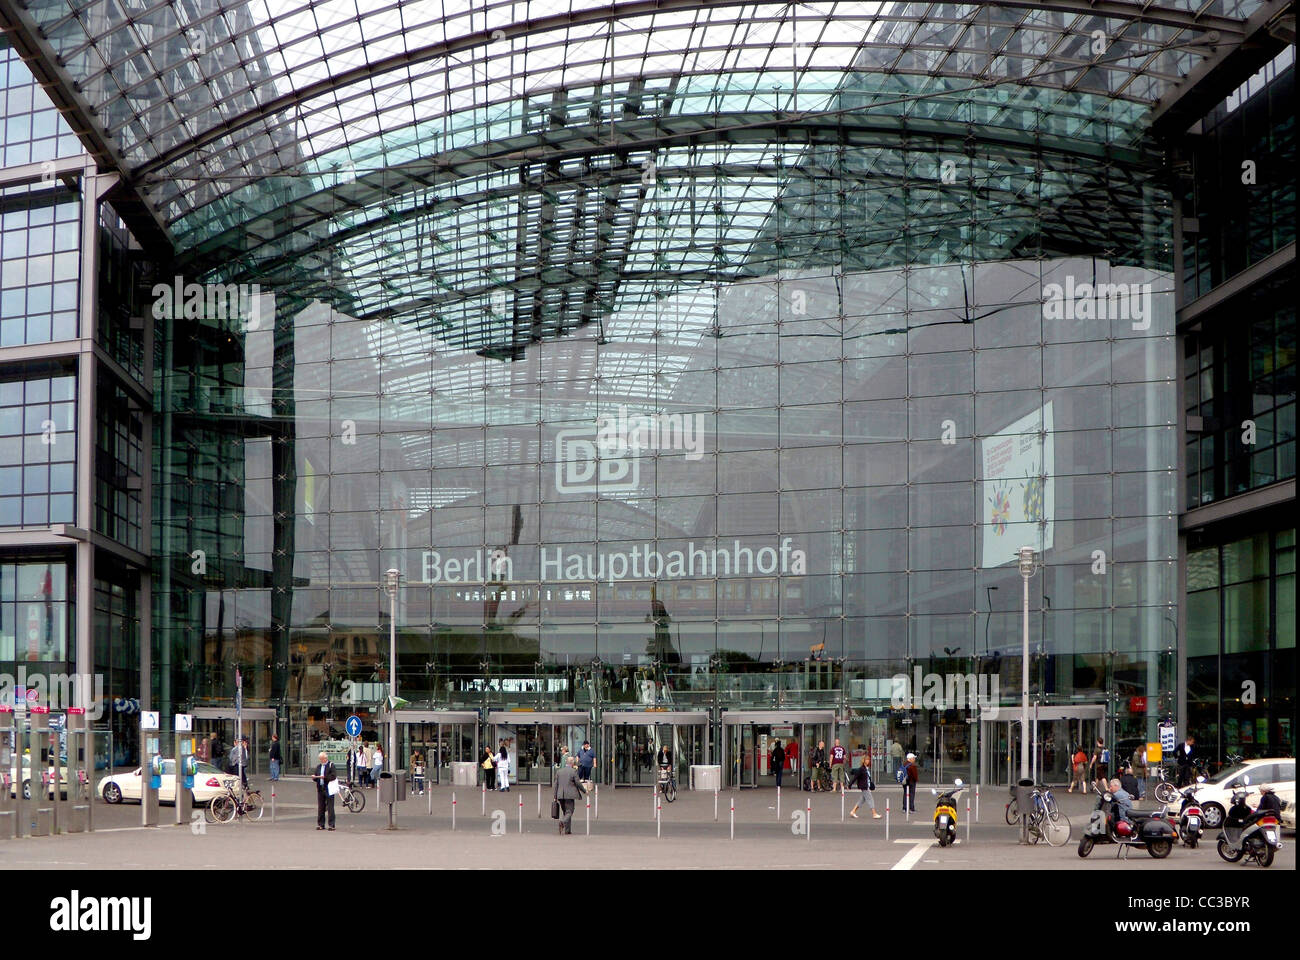 Central train station of Berlin. - Stock Image